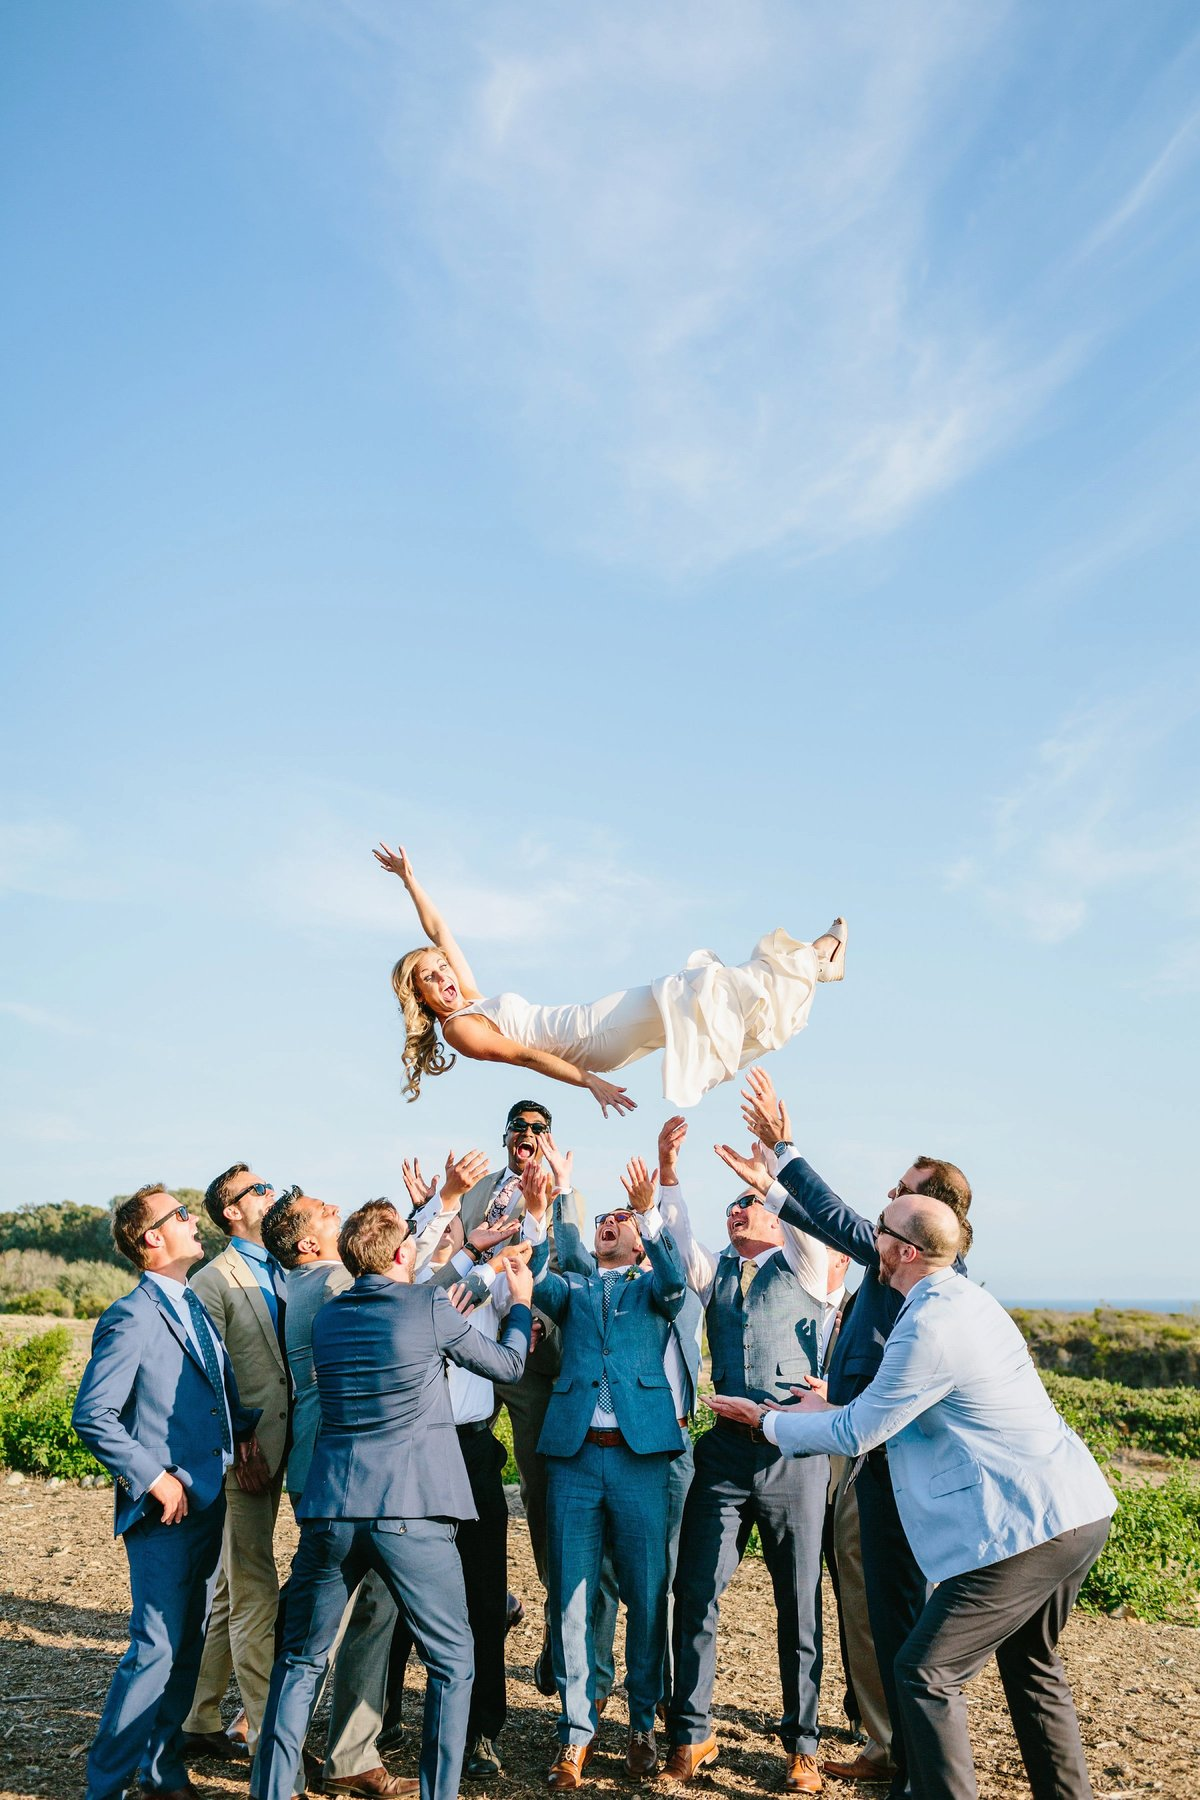 Best California Wedding Photographer-Jodee Debes Photography-12